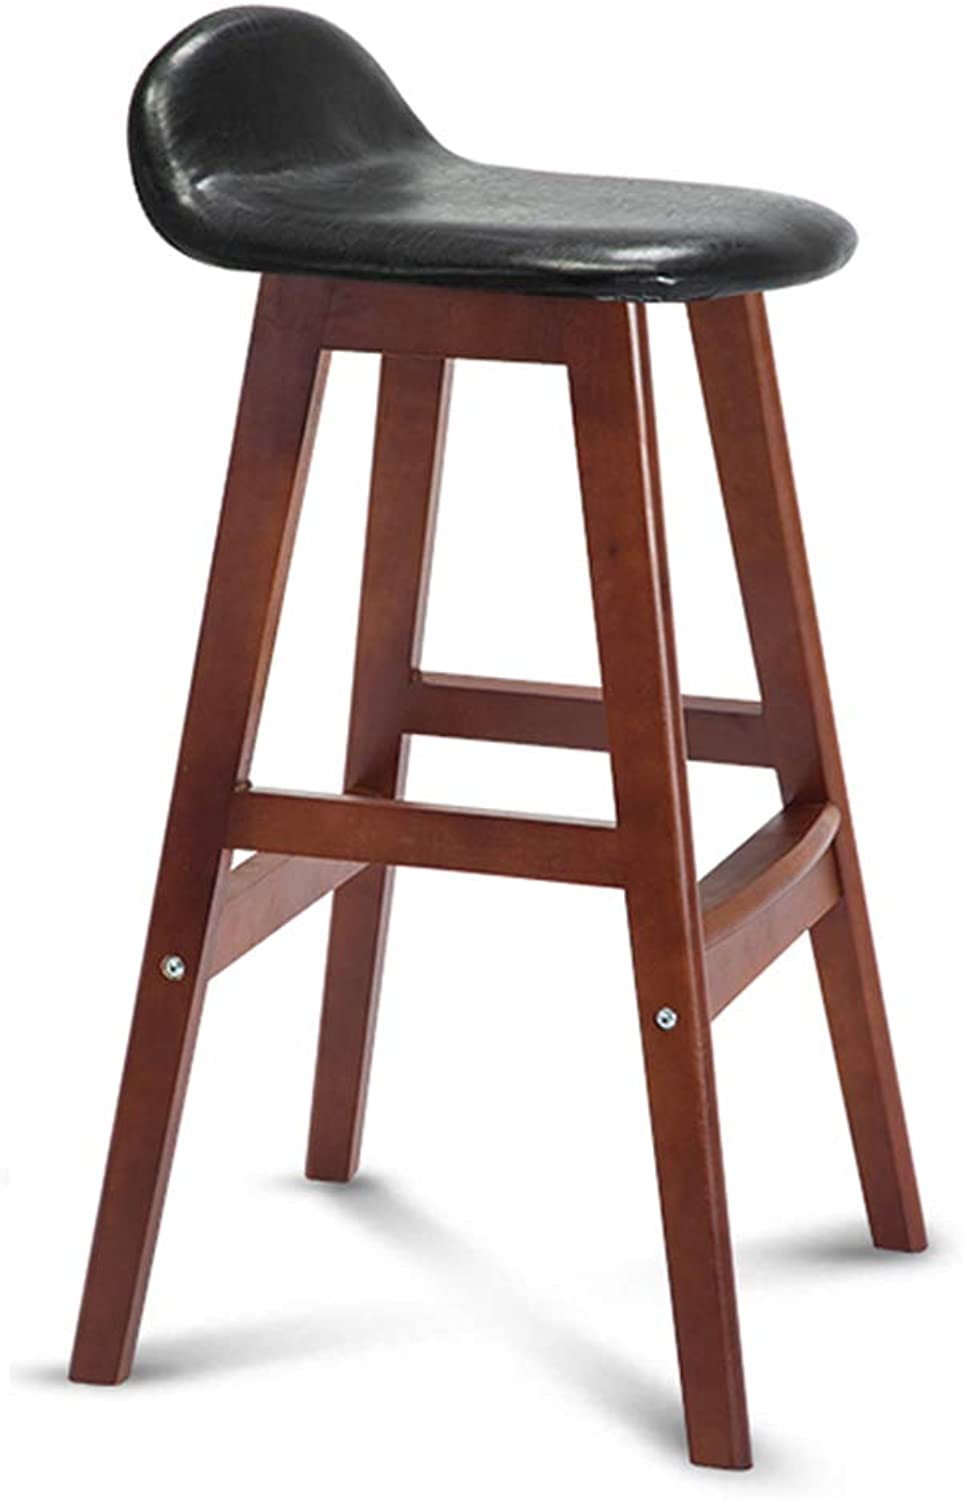 Bar Pub High Stools Dining Chairs Bar Chairs Counter Stool with Backrest Bar Stools Chairs Set High Stool Leisure Simple Nordic for Cafe